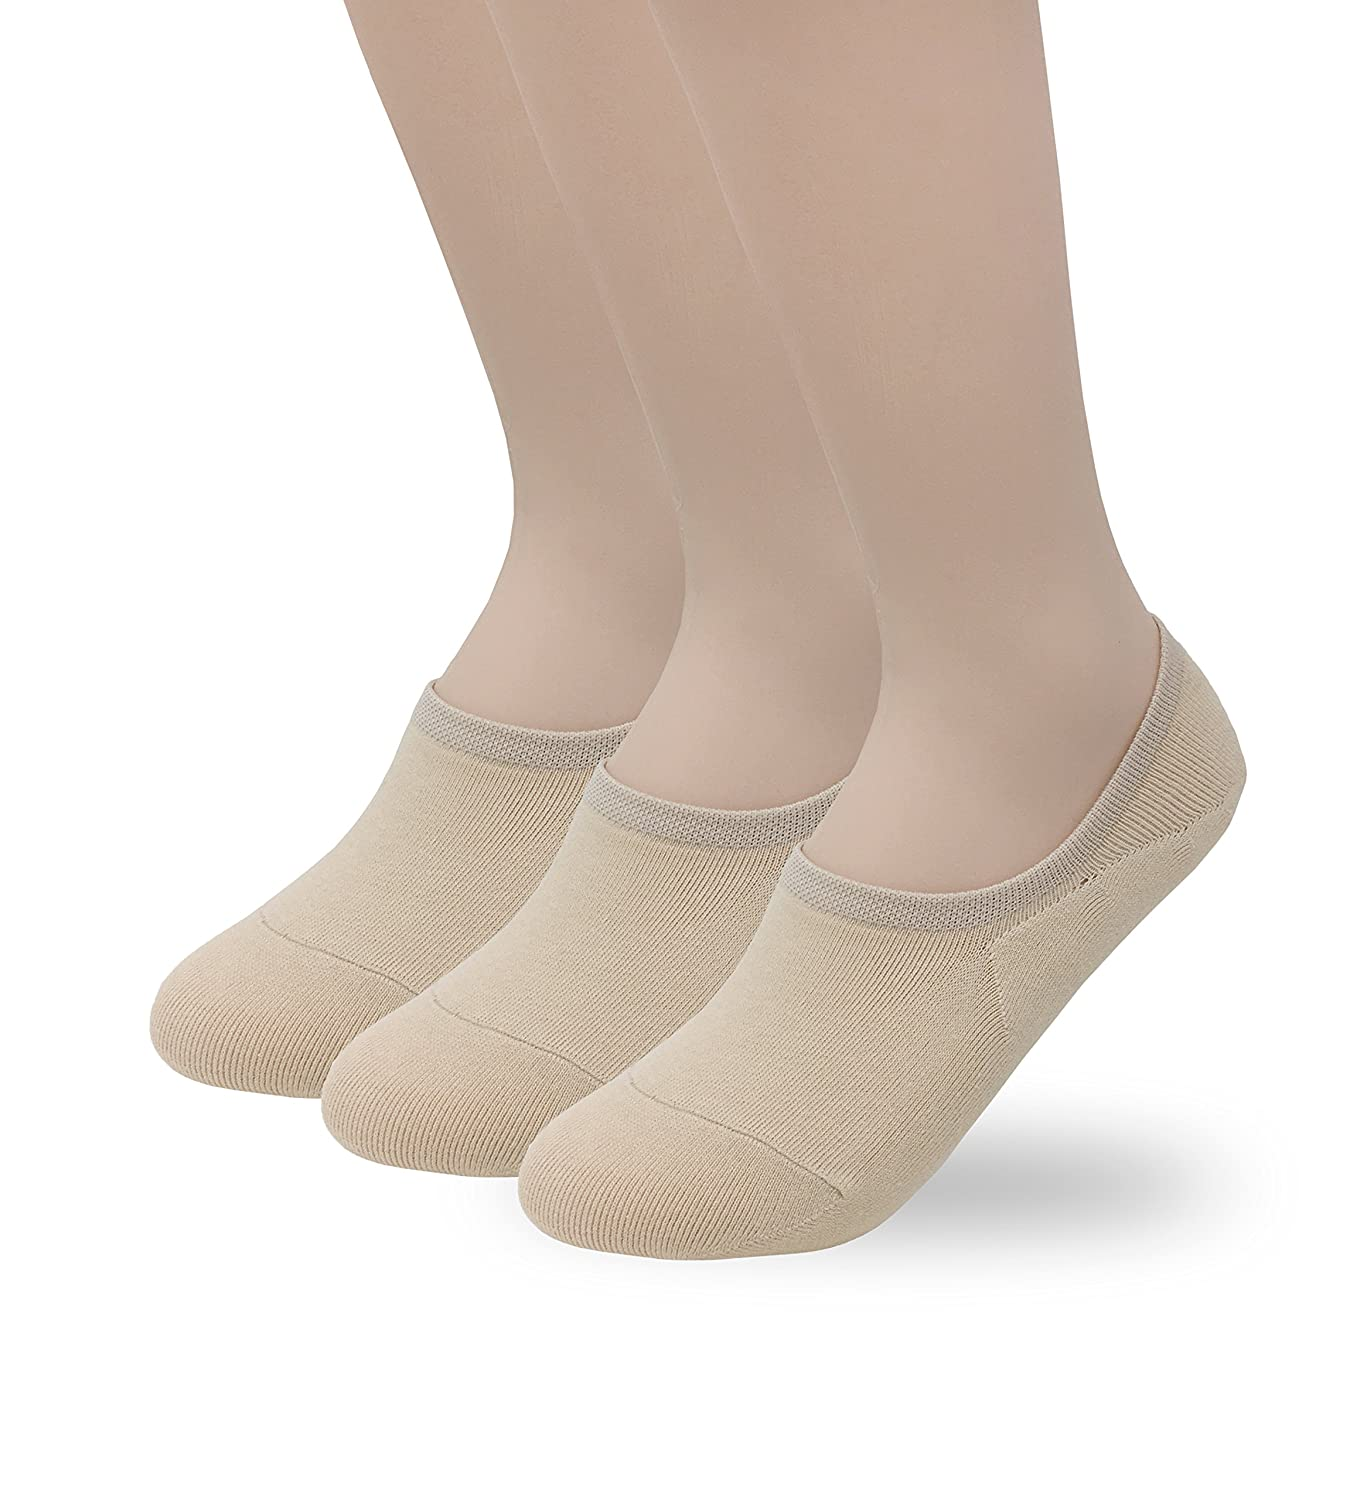 4c3b518c2cf36 Eedor Women's 3 Pairs Thin Casual Low Cut No Show Socks Non-Slip Hidden  Invisible Liner Beige S17 at Amazon Women's Clothing store: